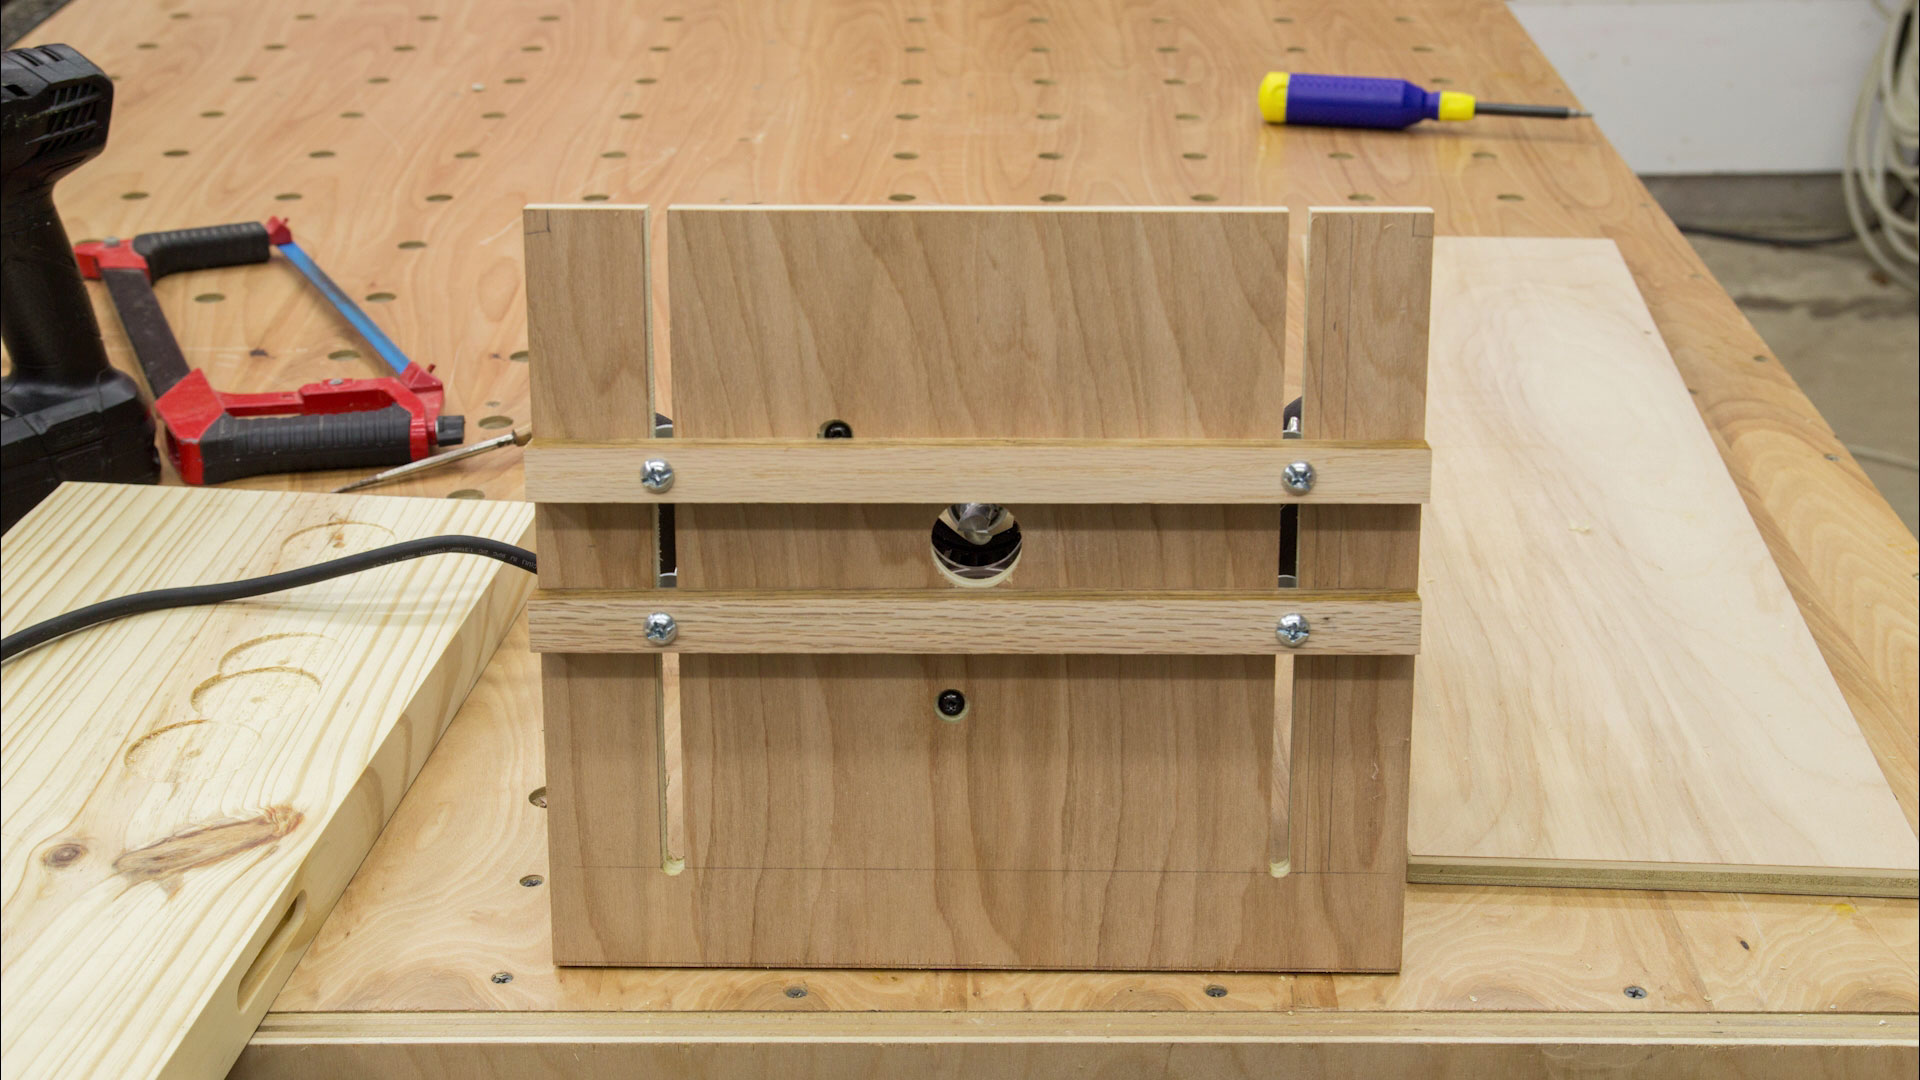 Universal Router Edge Guide And Mortise Jig | Jays Custom Creations